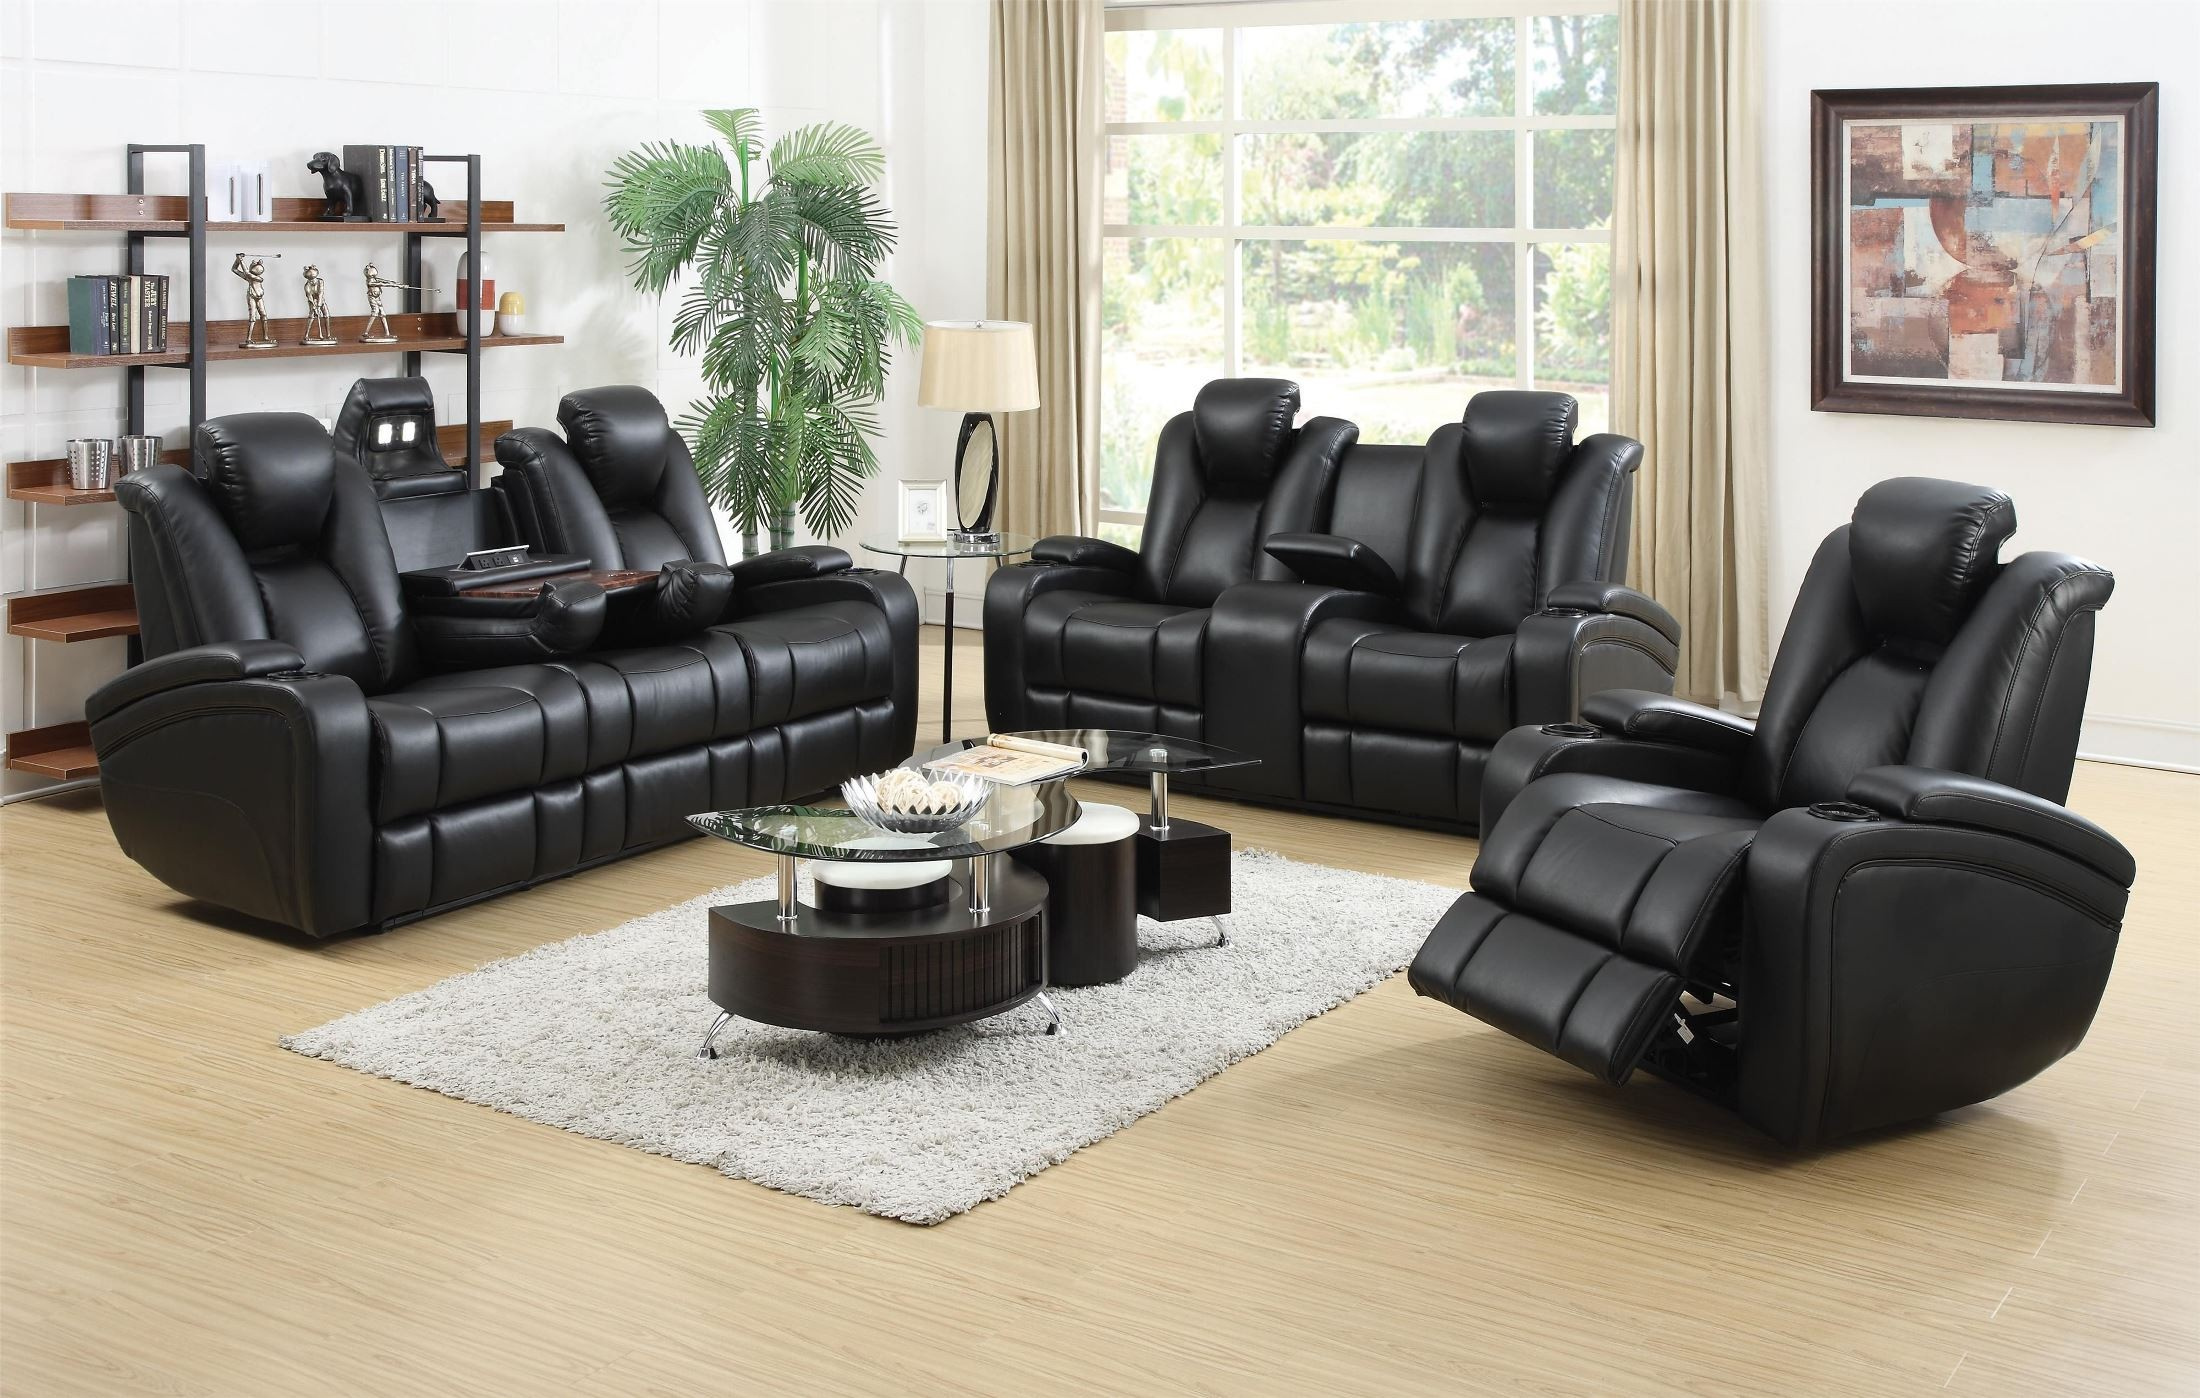 604843 & Delange Power Recliner from Coaster (601743P) | Coleman Furniture islam-shia.org